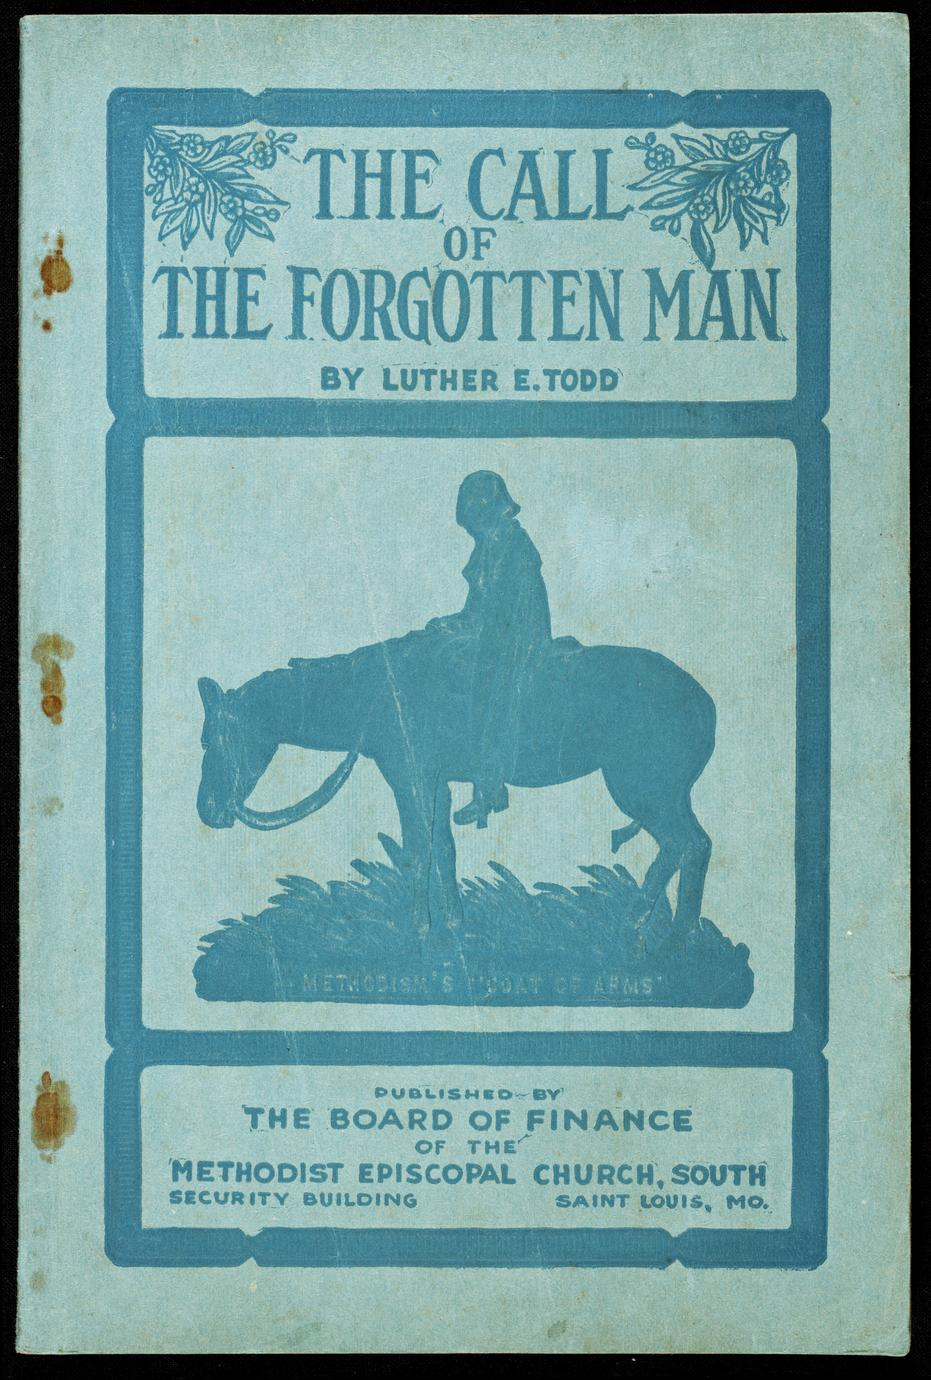 The call of the forgotten man